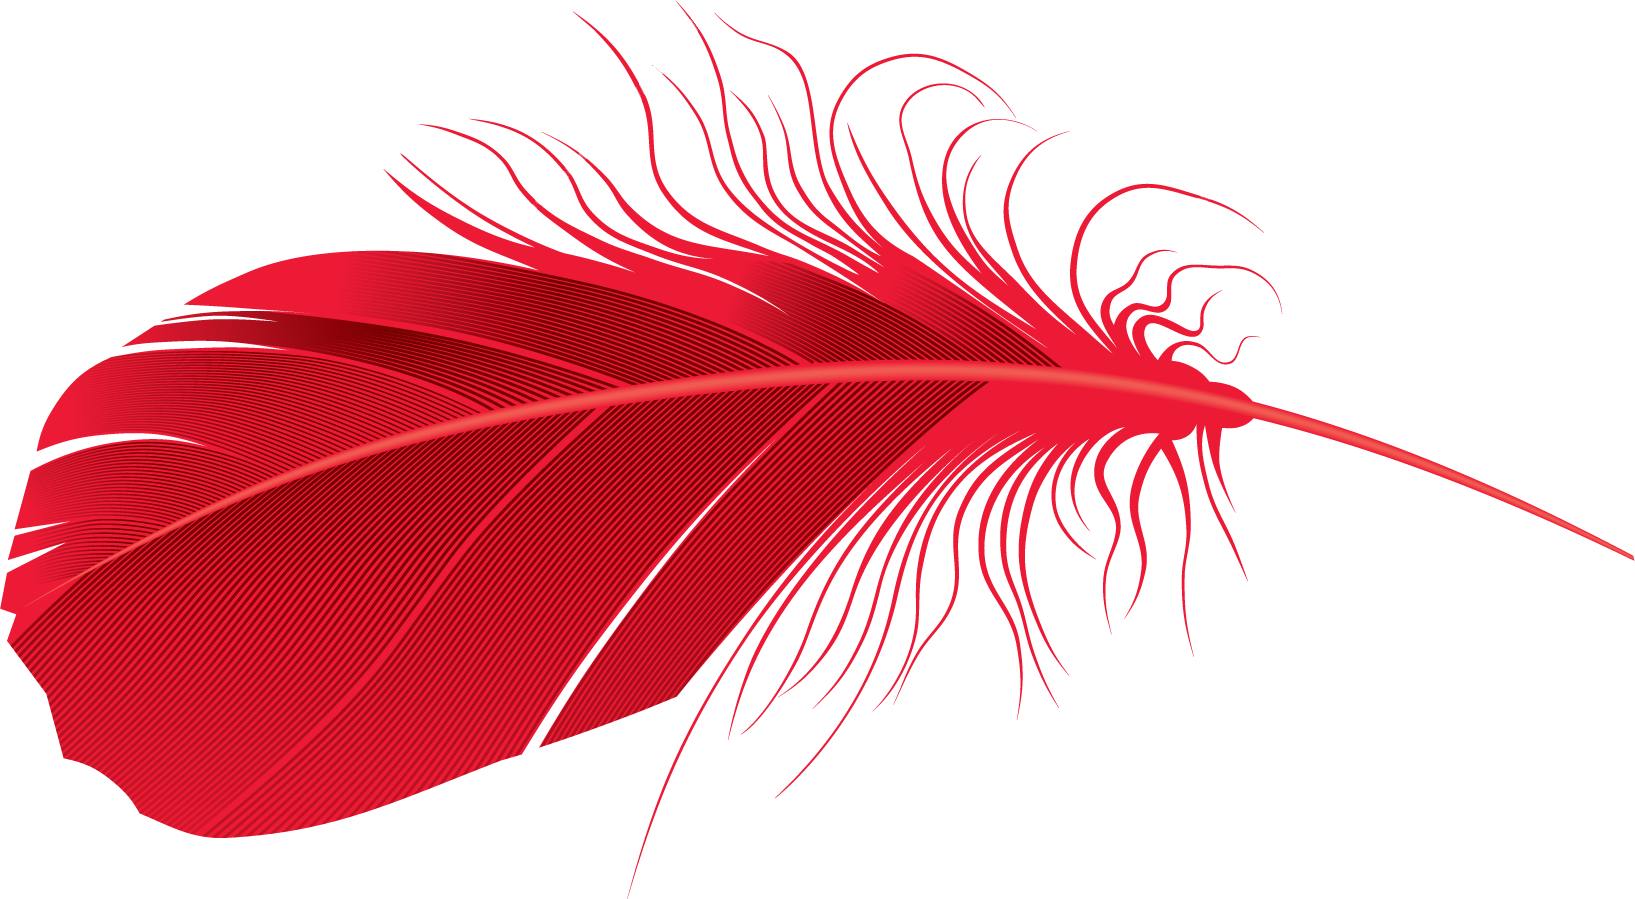 Download red Feather PNG Transparent Image #8.